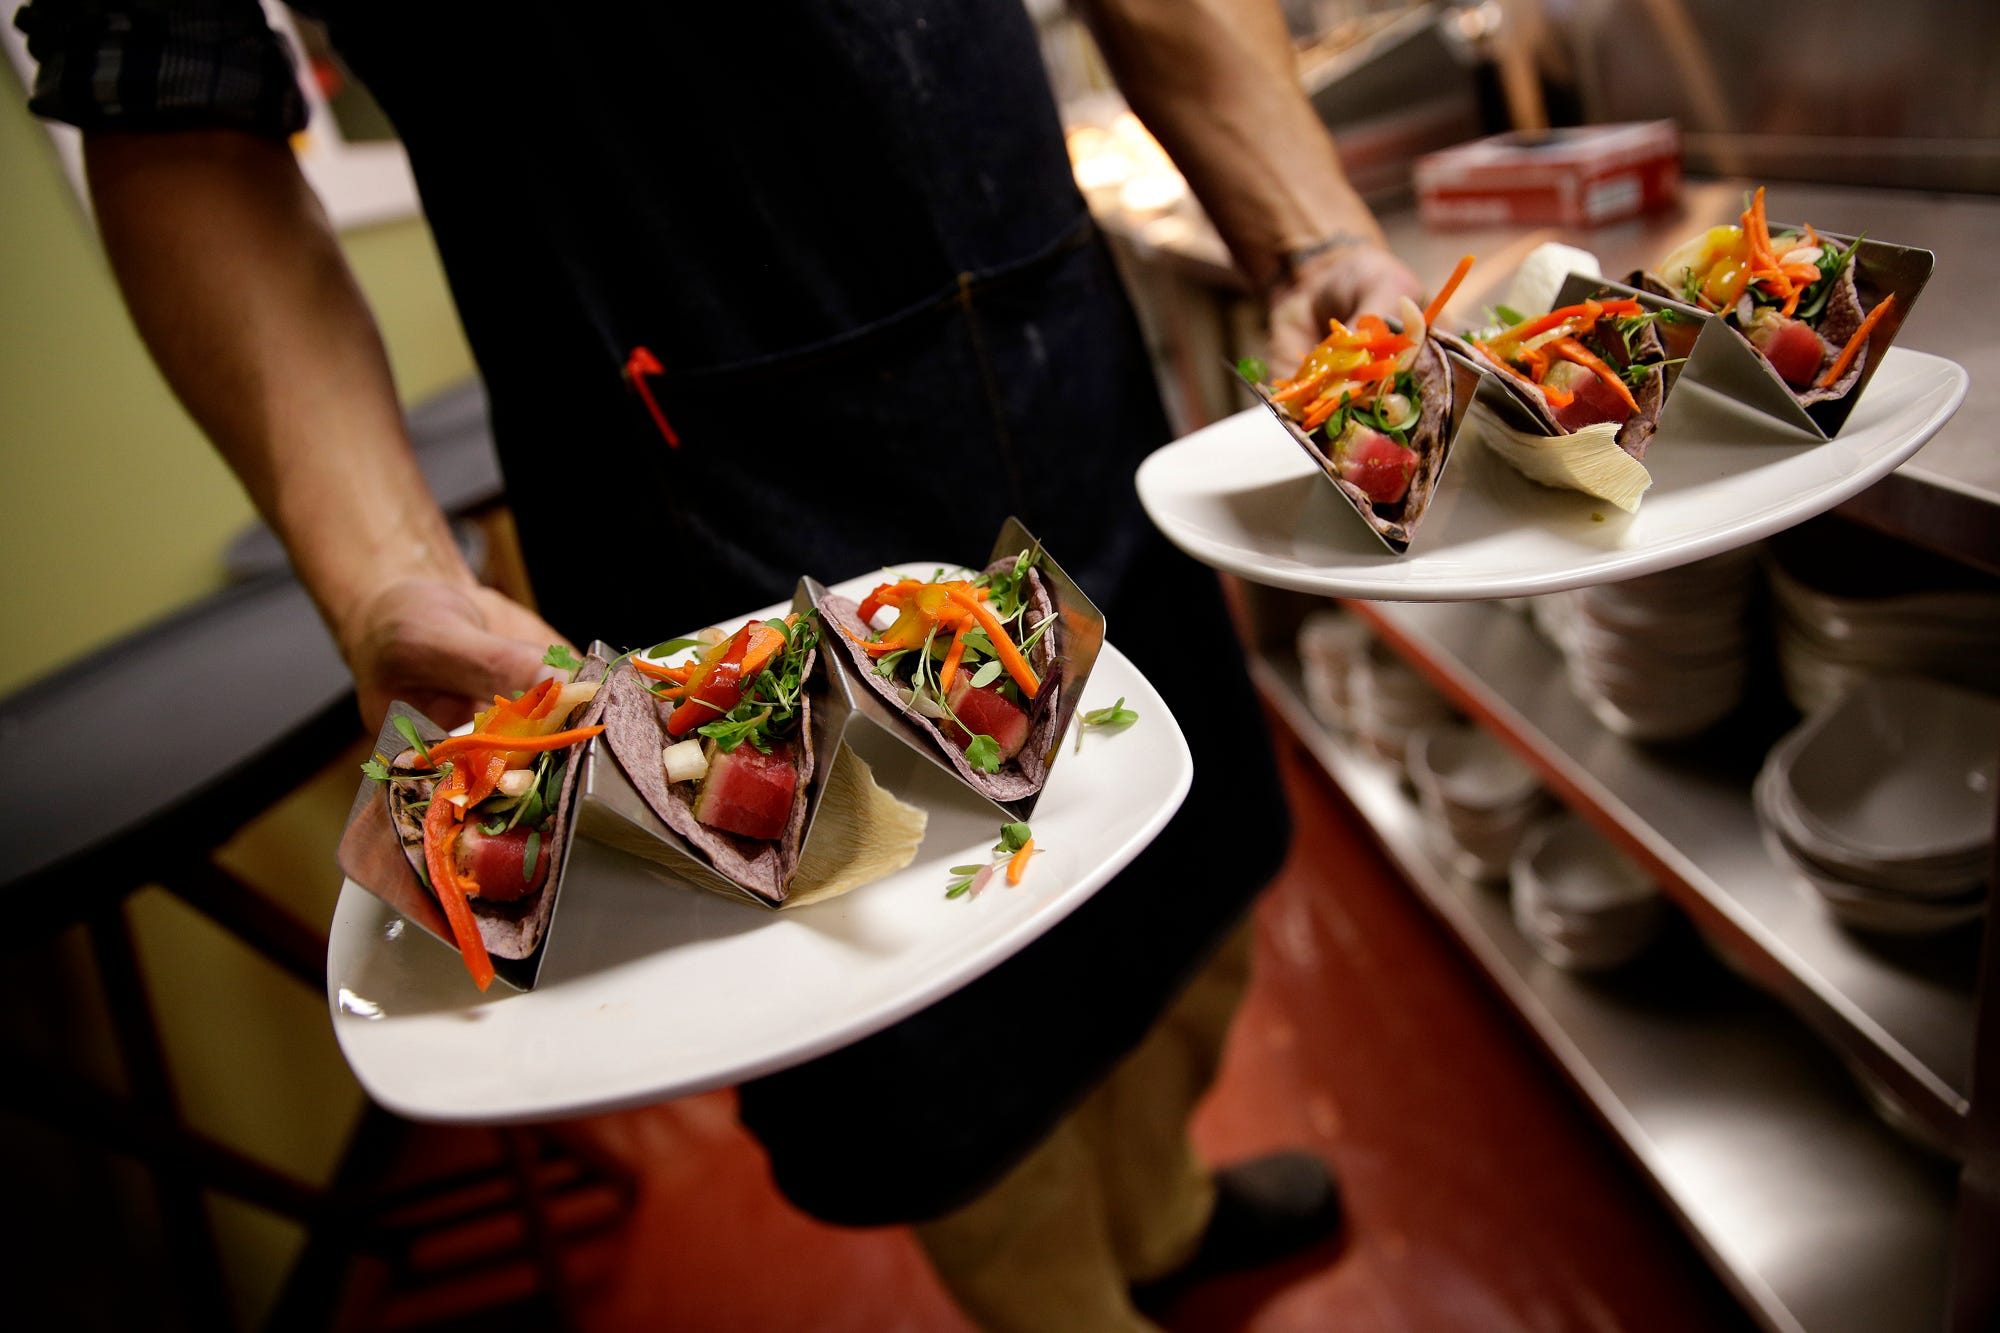 http://www.indystar.com/picture-gallery/life/food/2015/06/17/peek ...